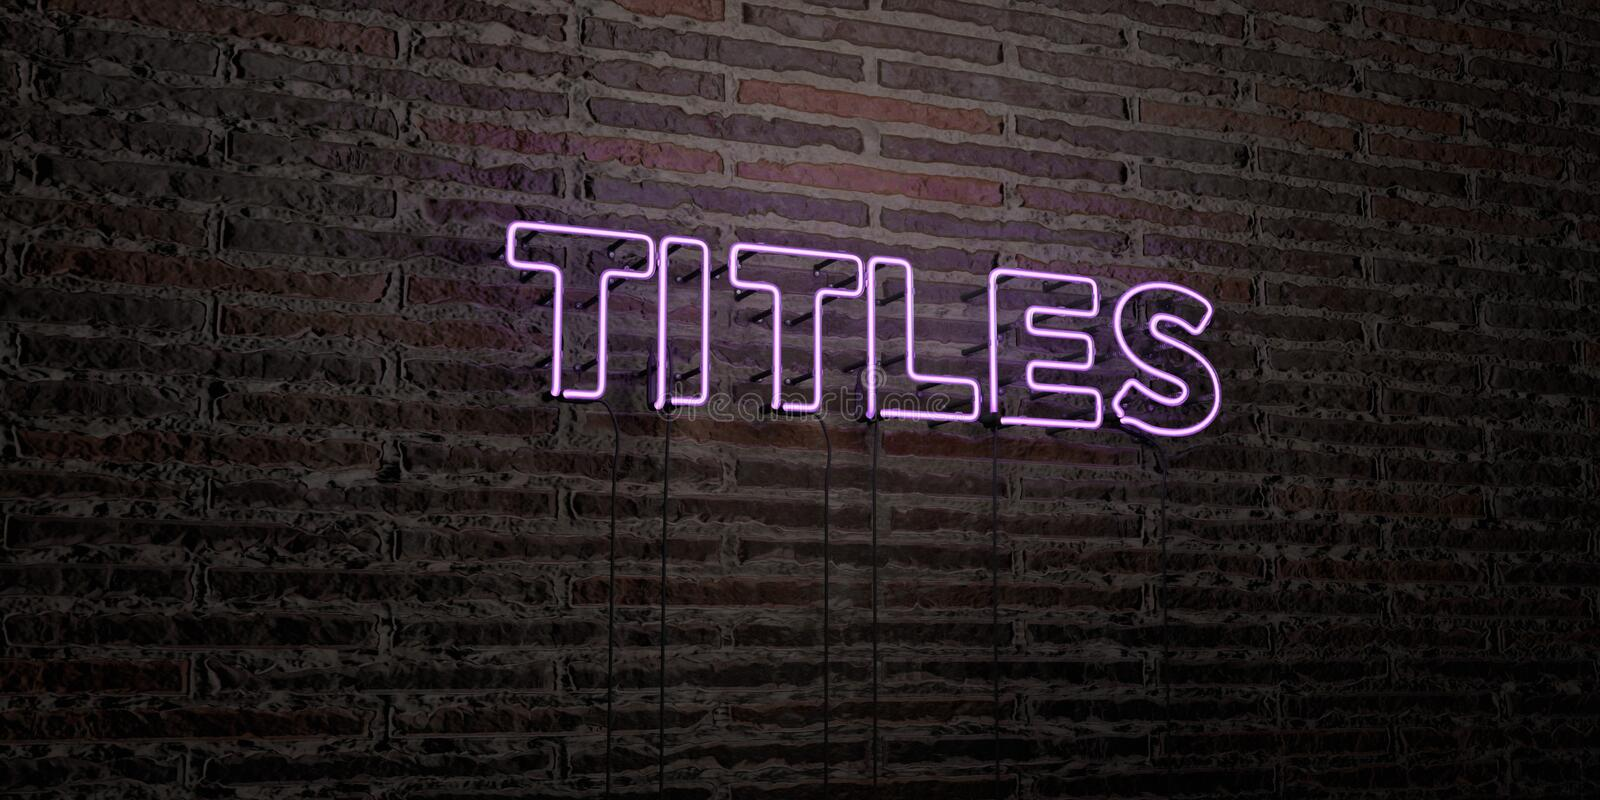 TITLES -Realistic Neon Sign on Brick Wall background - 3D rendered royalty free stock image vector illustration